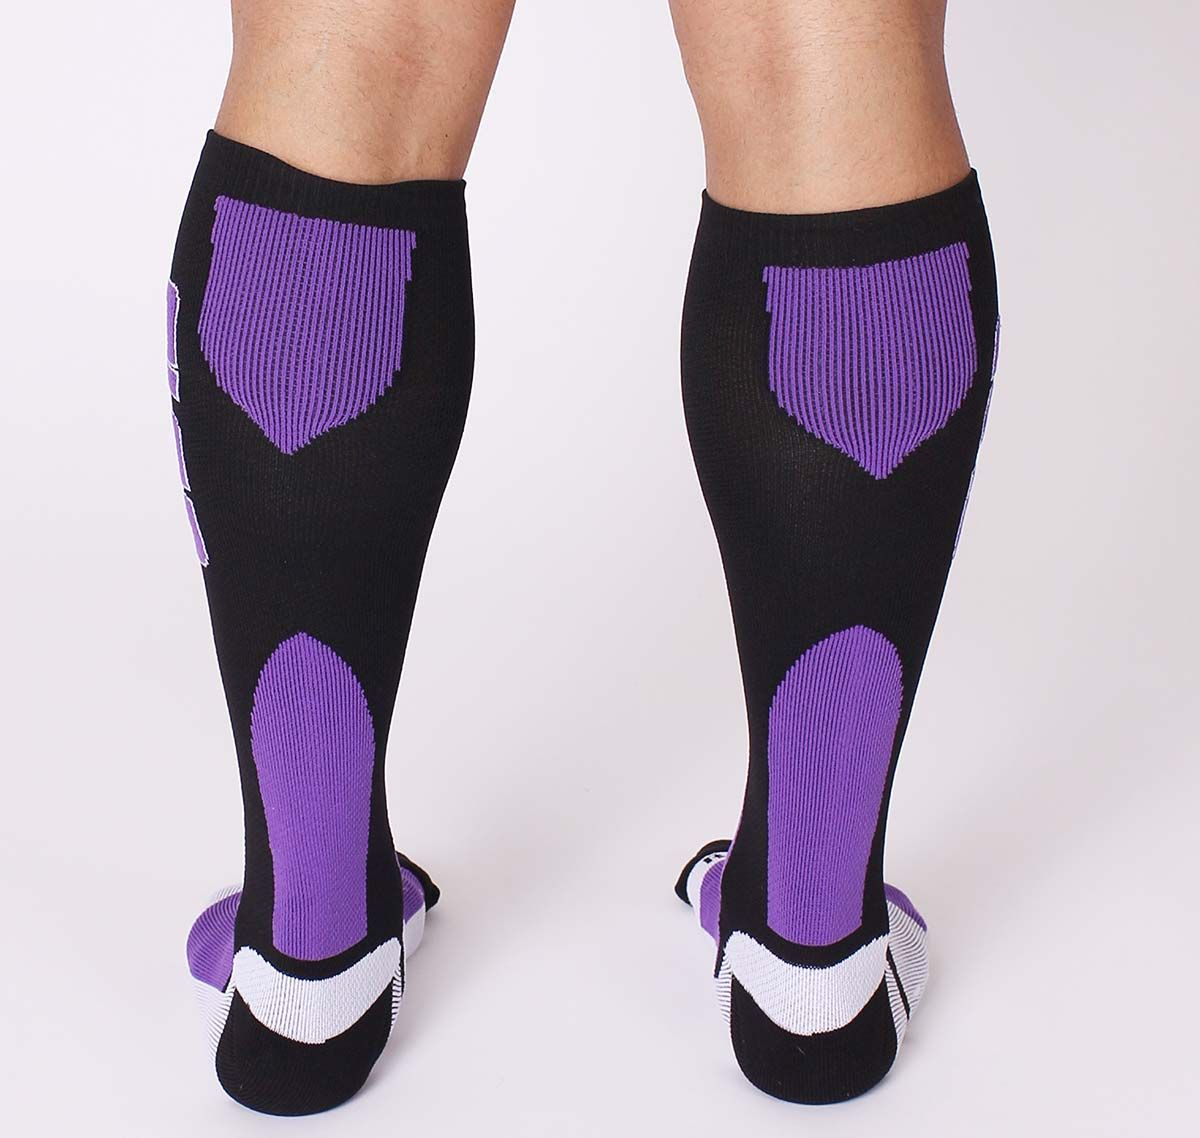 Cellblock 13 chaussettes de sport ARSENAL KNEE HIGH SOCK, violet